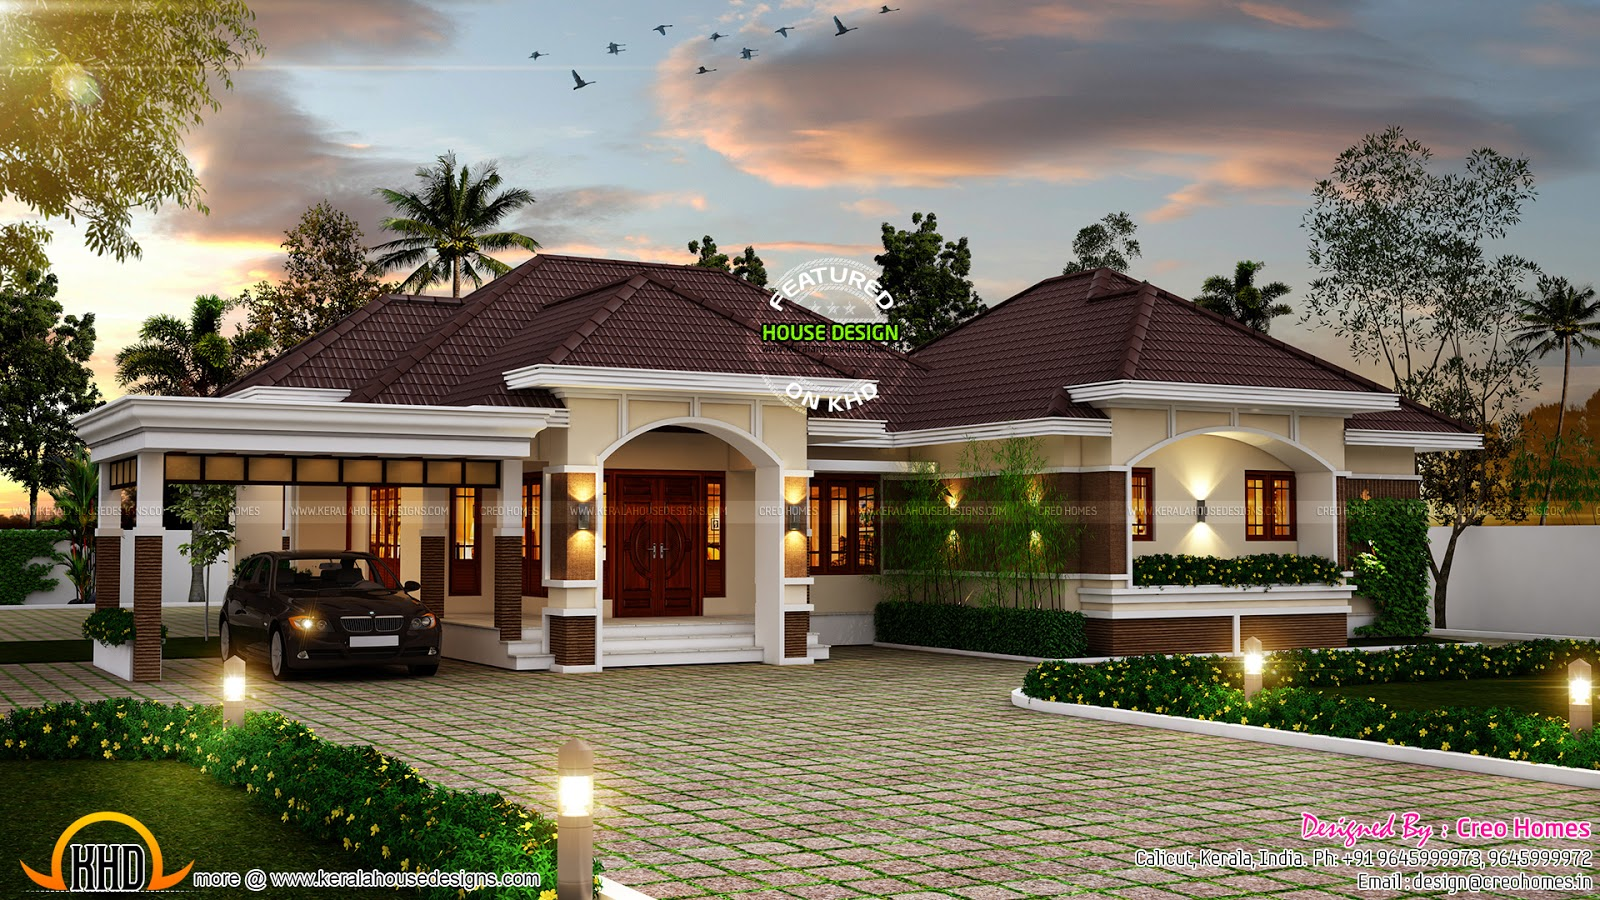 Outstanding bungalow in kerala kerala home design and for Kerala homes photo gallery